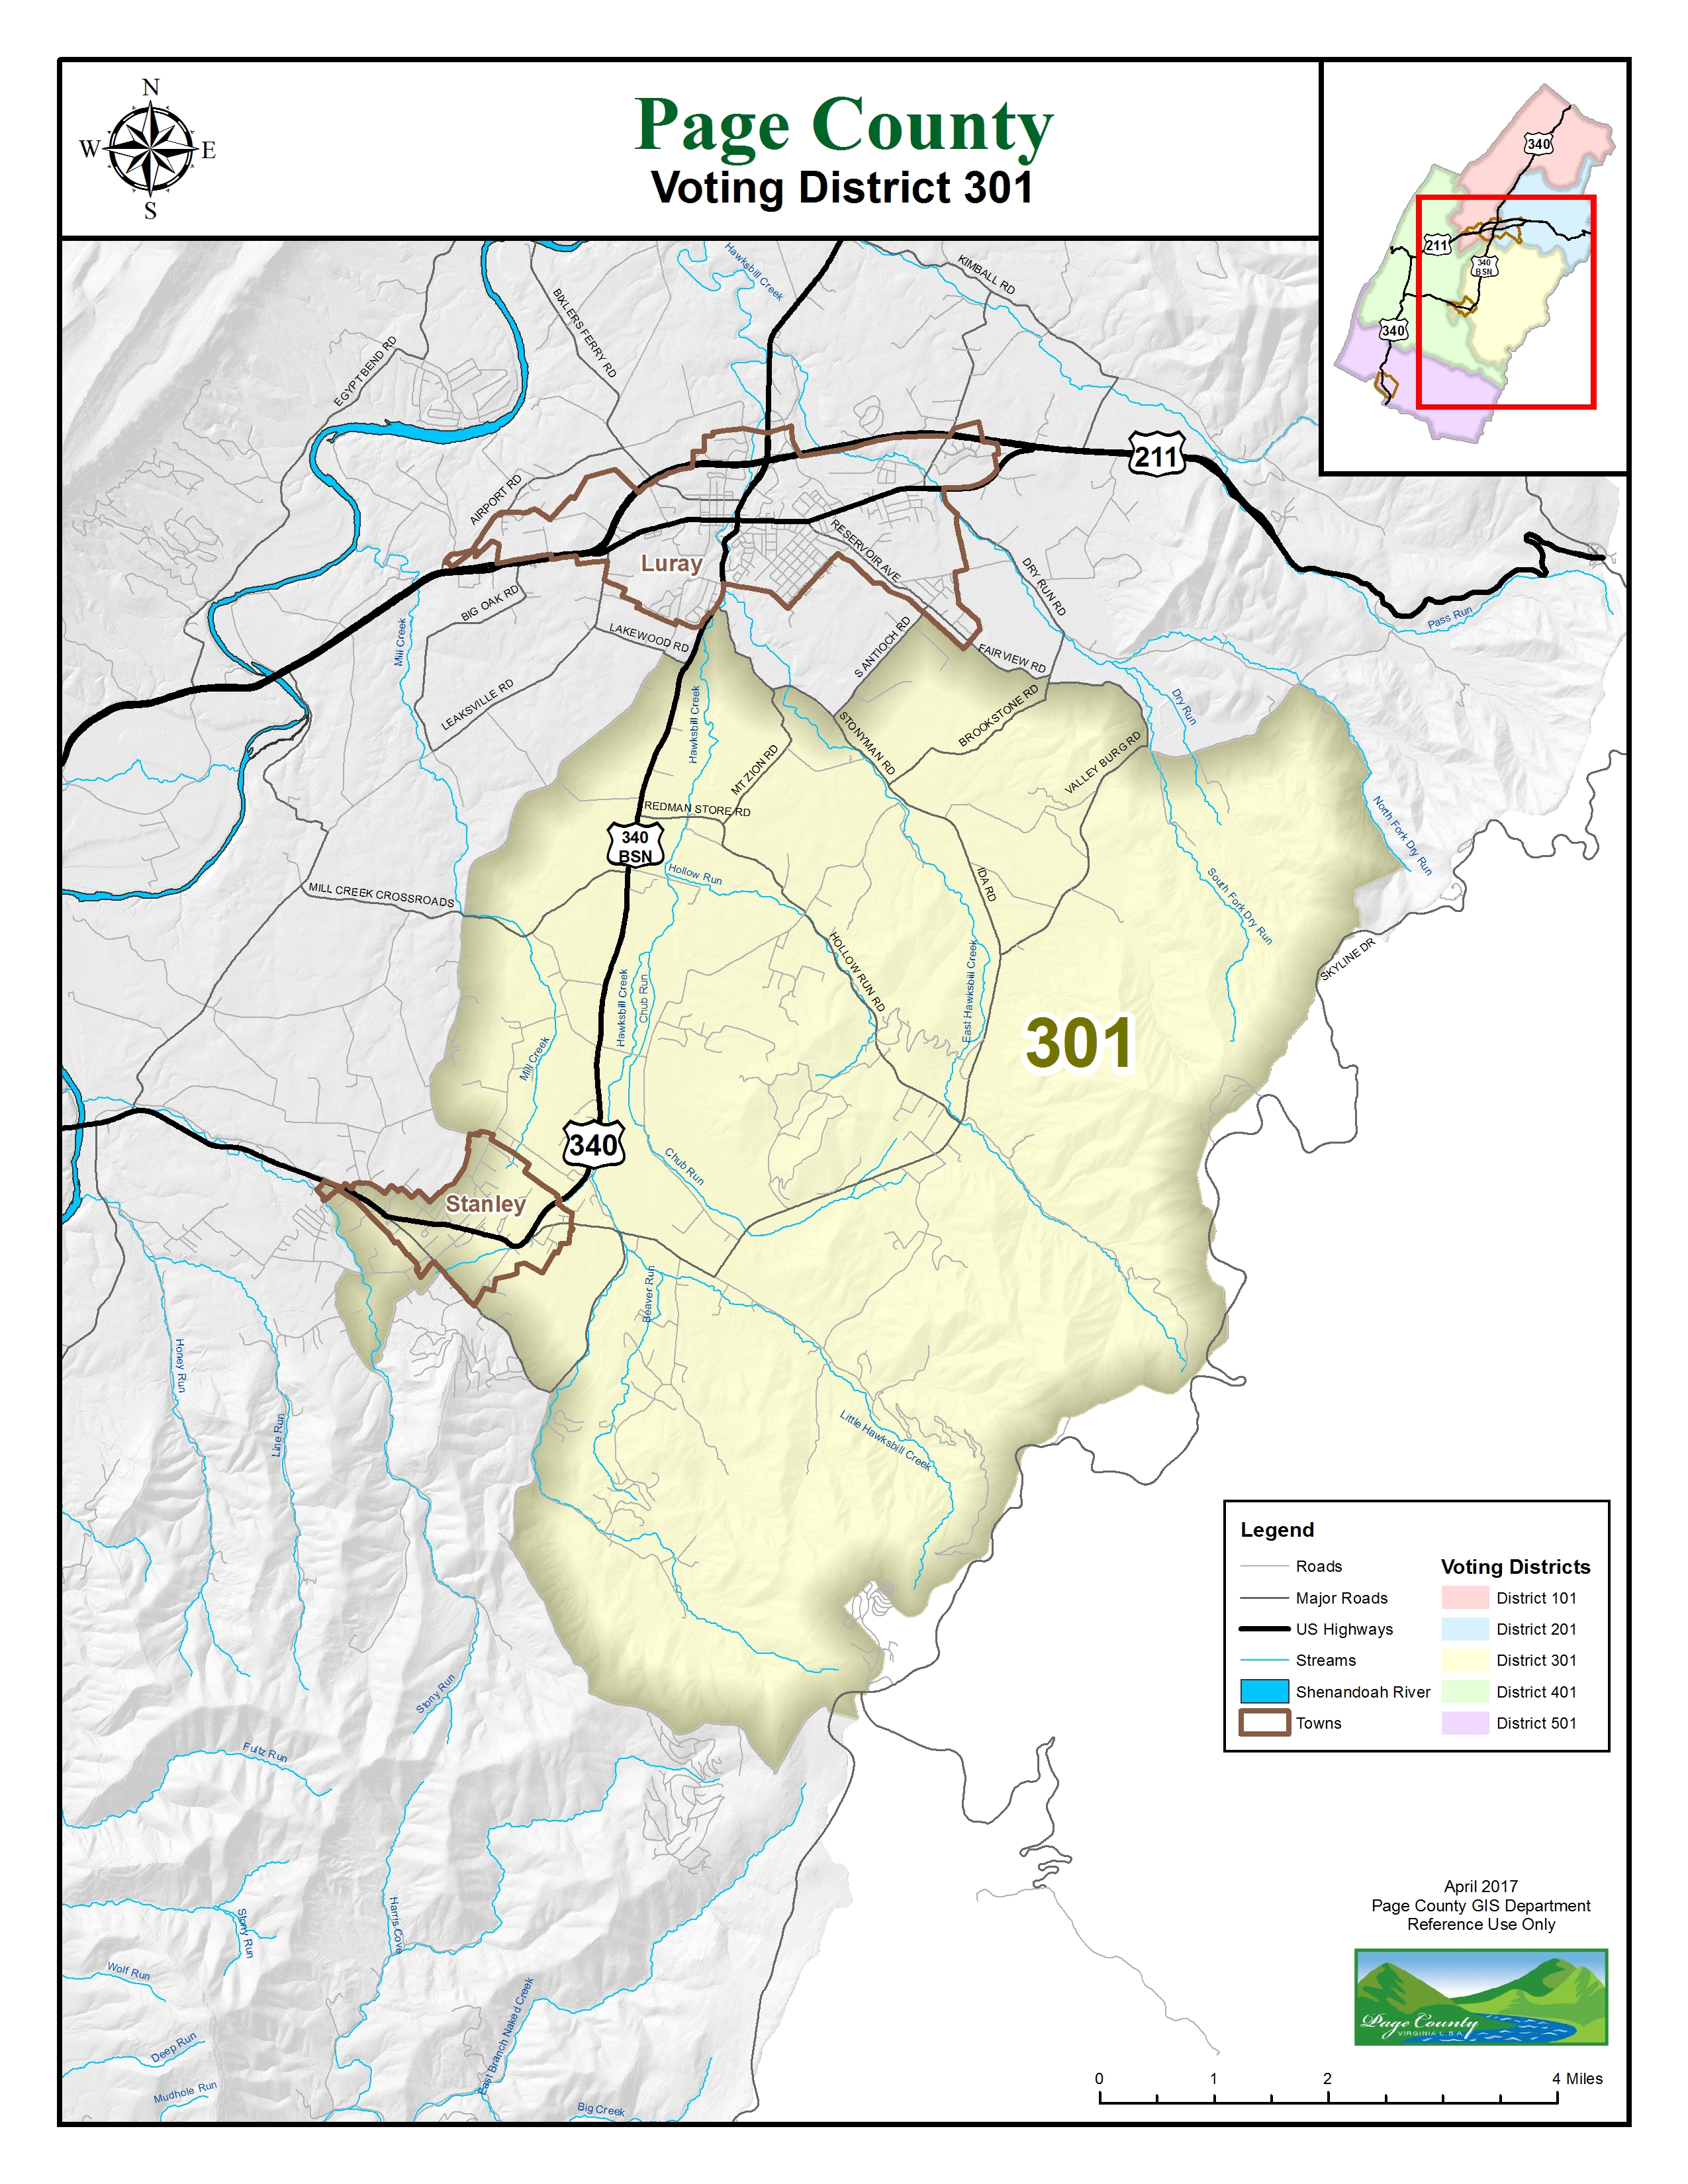 Map 401.Voting District Maps Page County Va